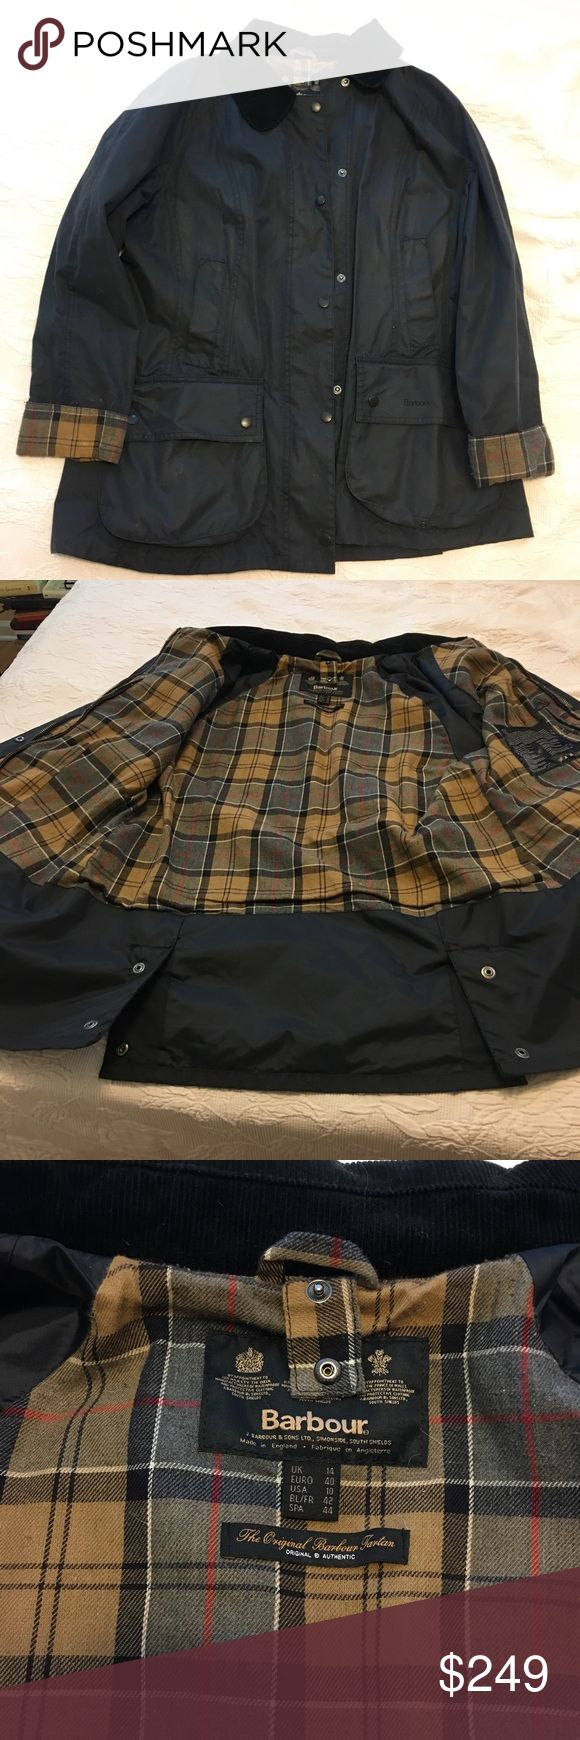 Barbour Ladies Beadnell Waxed Jacket - Navy Authentic Ladies waxed jacket by Barbour. Barely worn. Slight pulling on fabric interior. US size 10 Barbour Jackets & Coats Utility Jackets